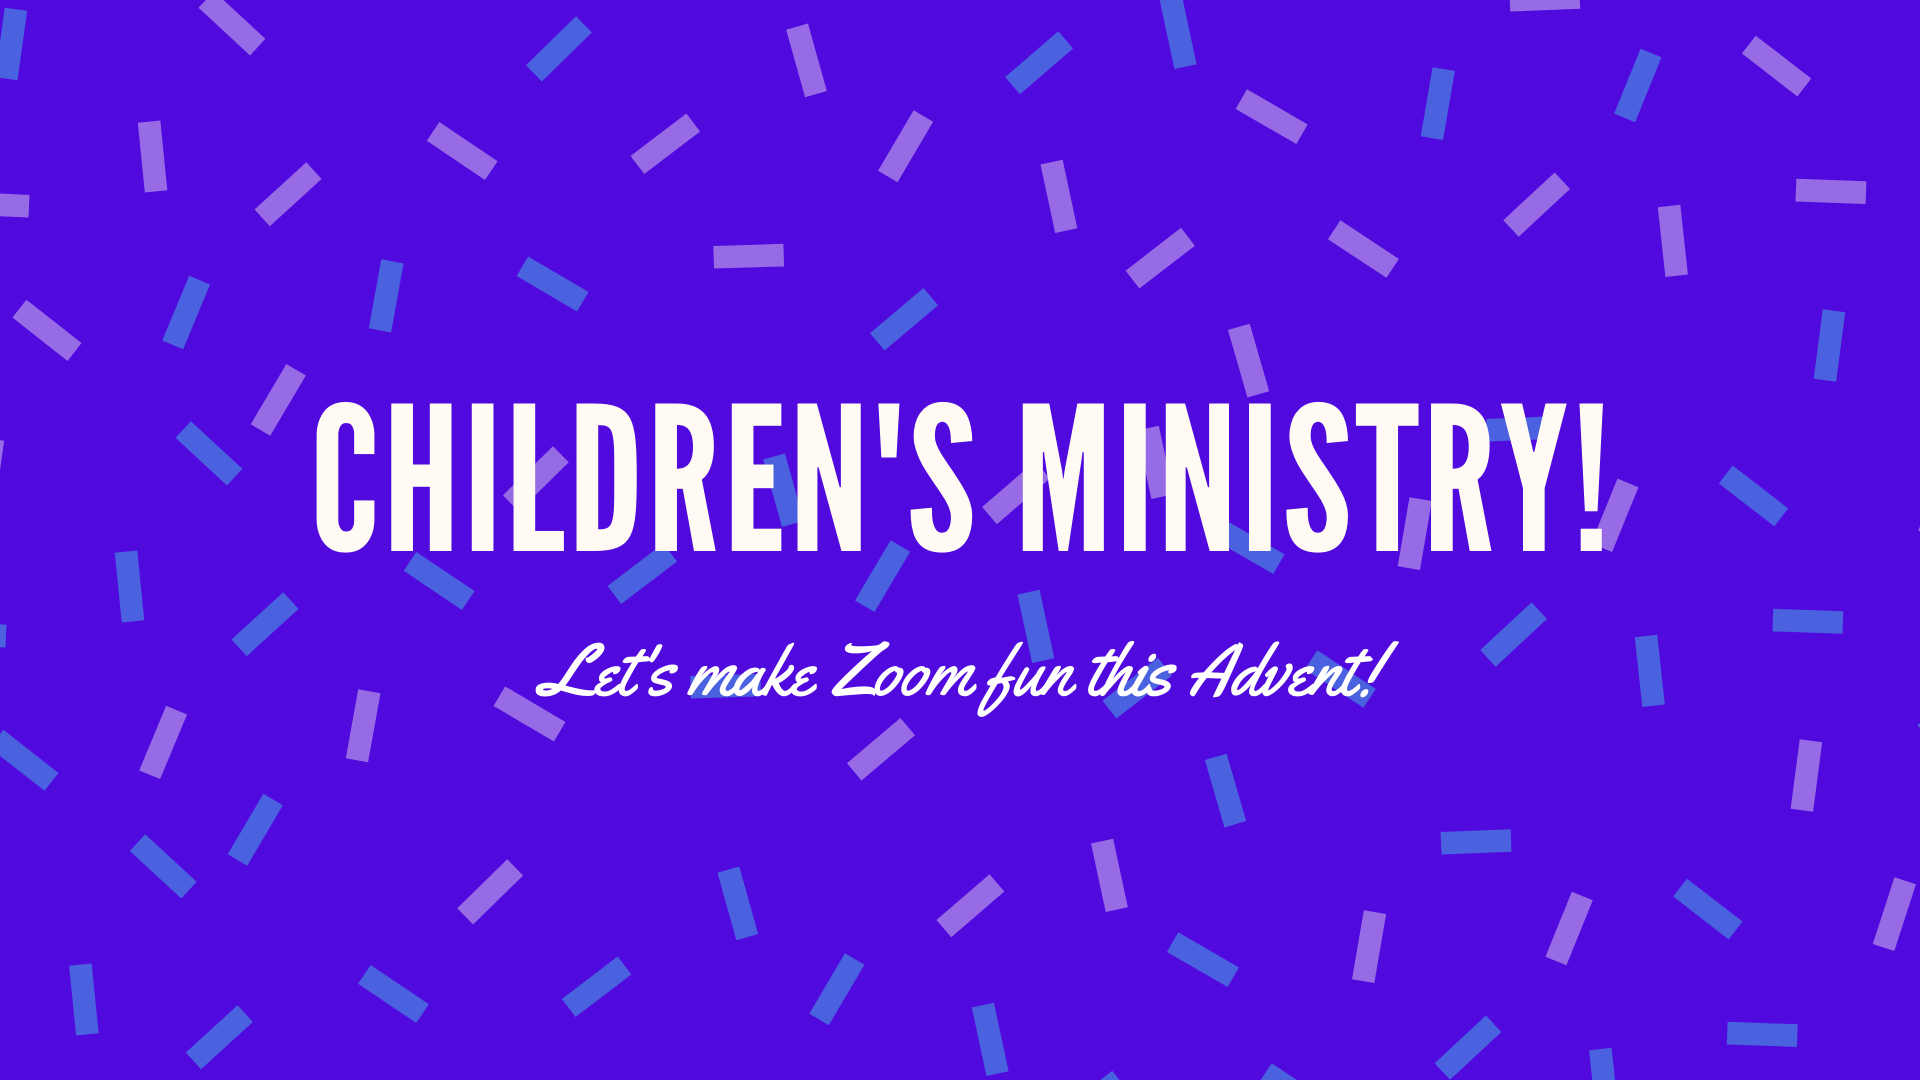 childrens-ministry-1_639